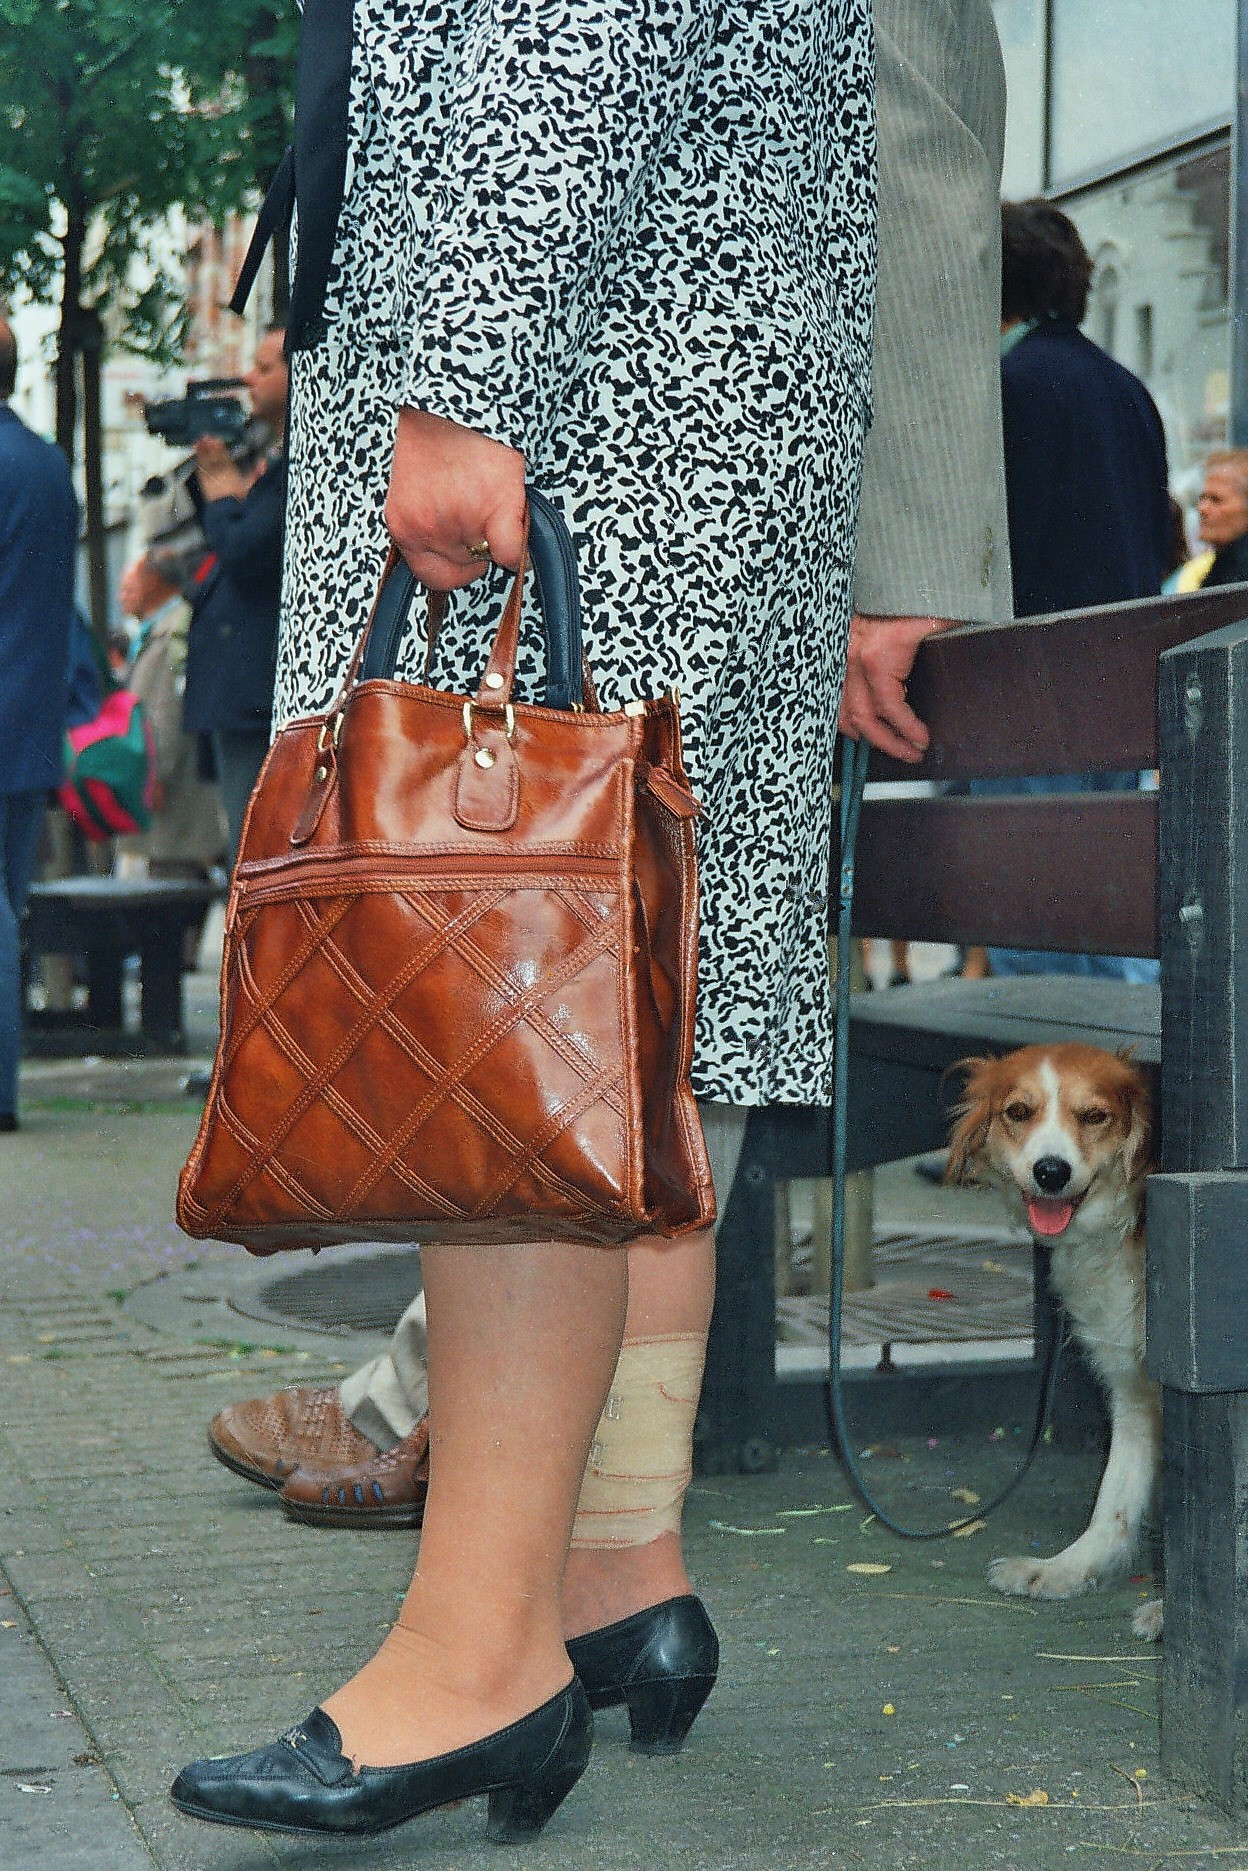 Elderly woman with bag and puppy